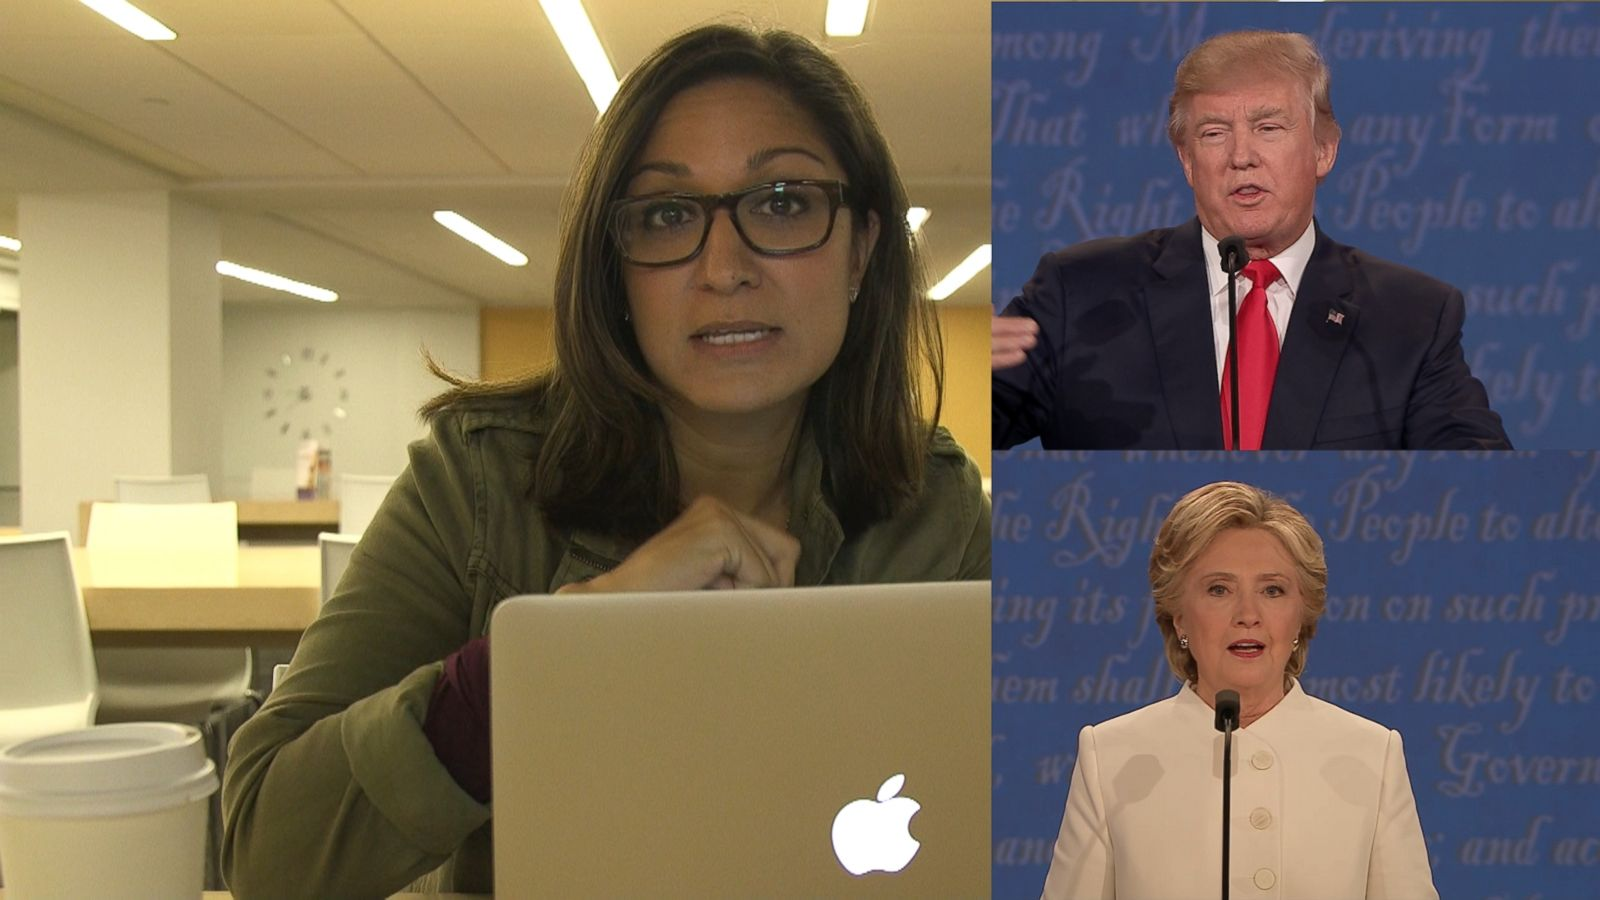 VIDEO: Undecided Voters React to Final Presidential Debate